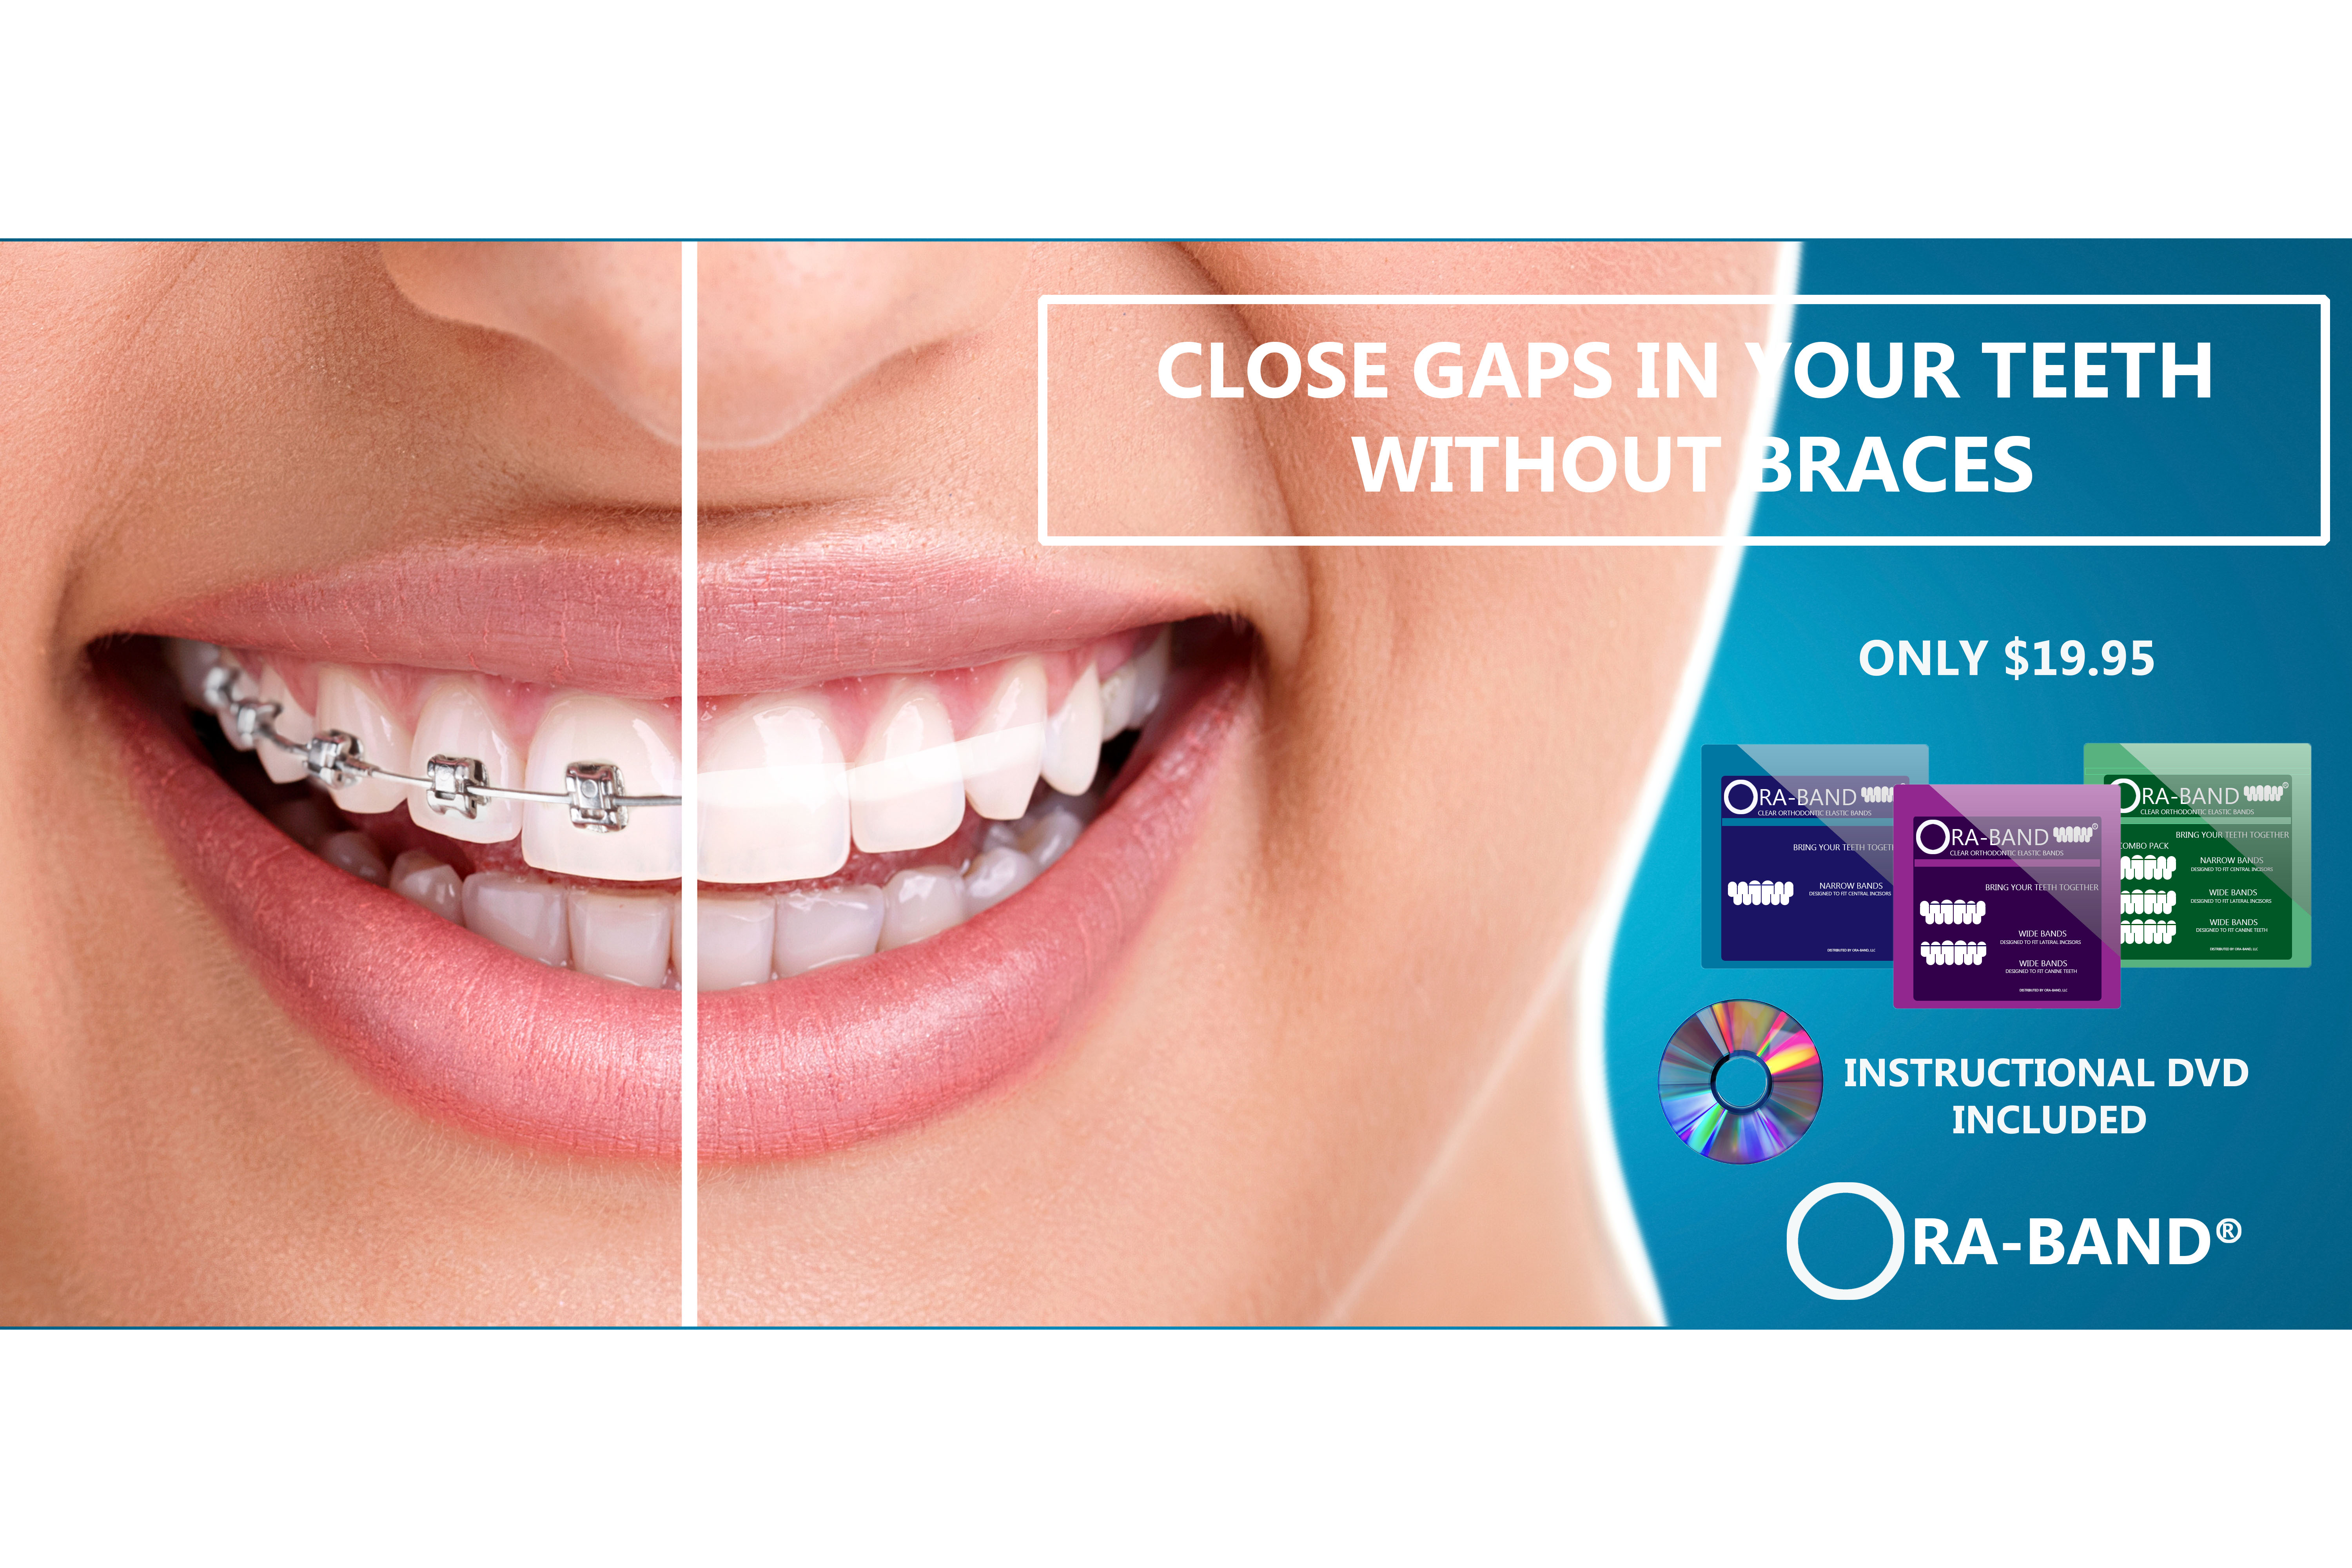 CLOSE GAPS IN YOUR TEETH WITHOUT BRACES